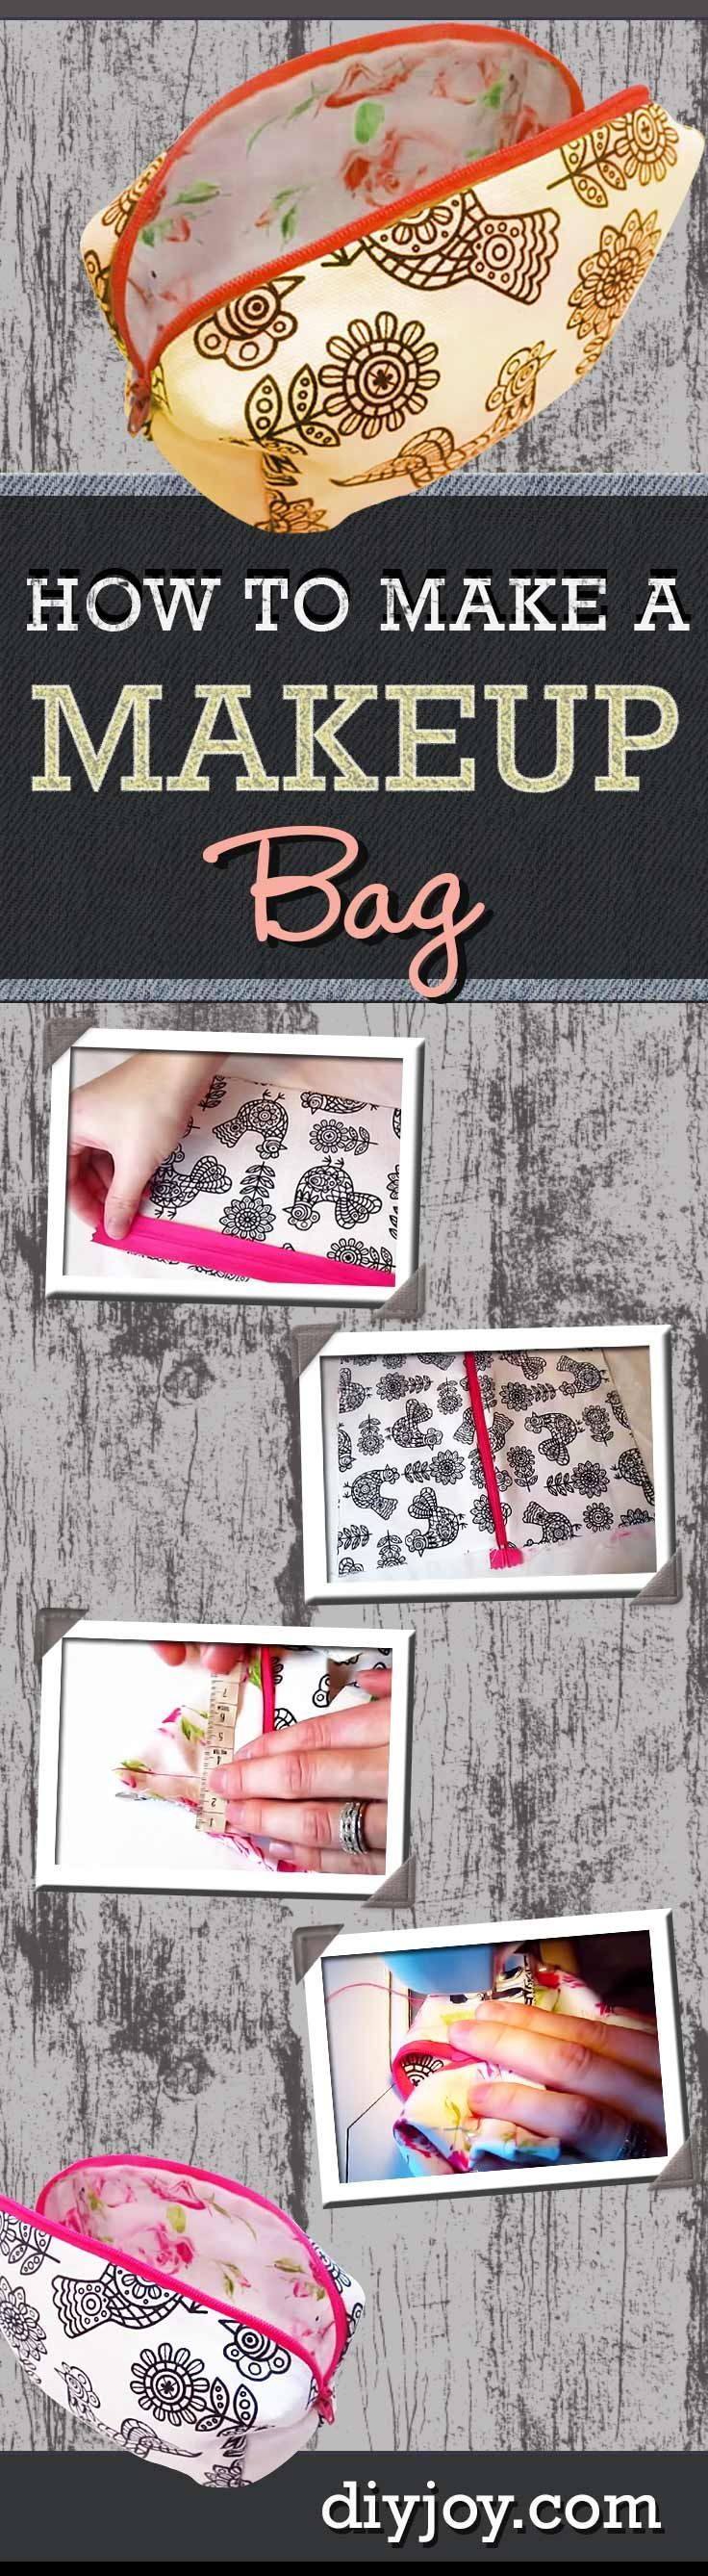 Keep all your toiletries in one place with this DIY makeup bag tutorial from diy...